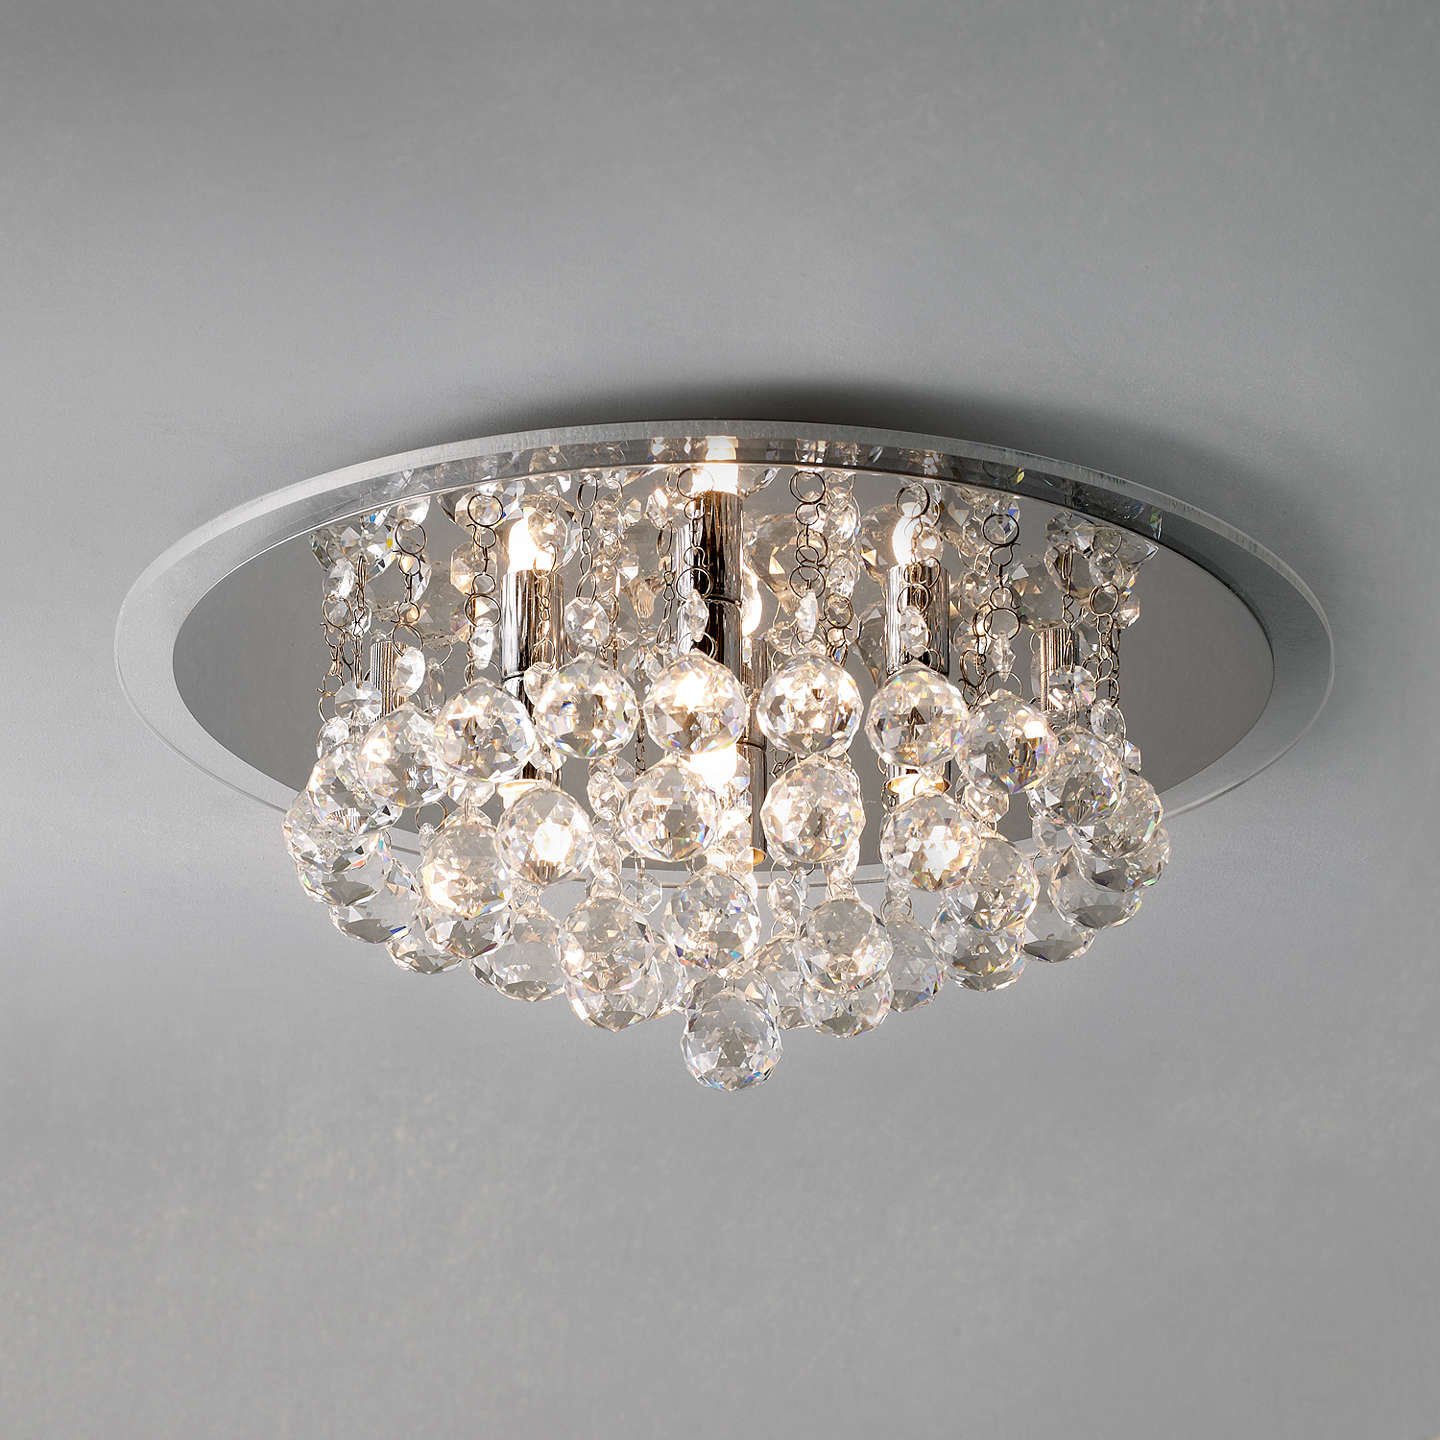 John lewis belinda flush ceiling light chrome crystal at john lewis buyjohn lewis belinda flush ceiling light chrome crystal online at johnlewis aloadofball Gallery